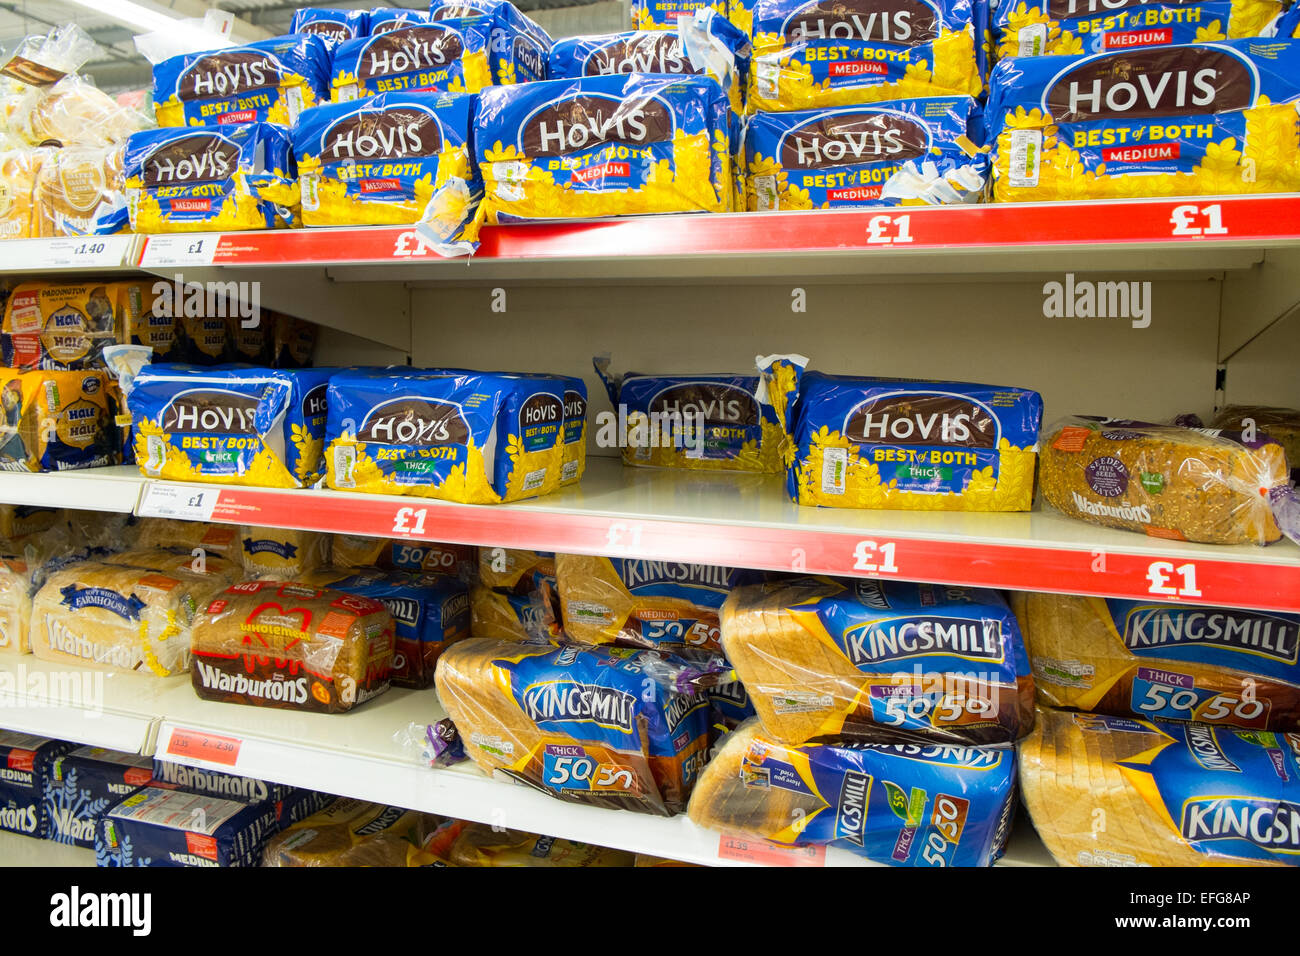 hovis and kingsmill bread for sale at a uk sainsbury's supermarket - Stock Image